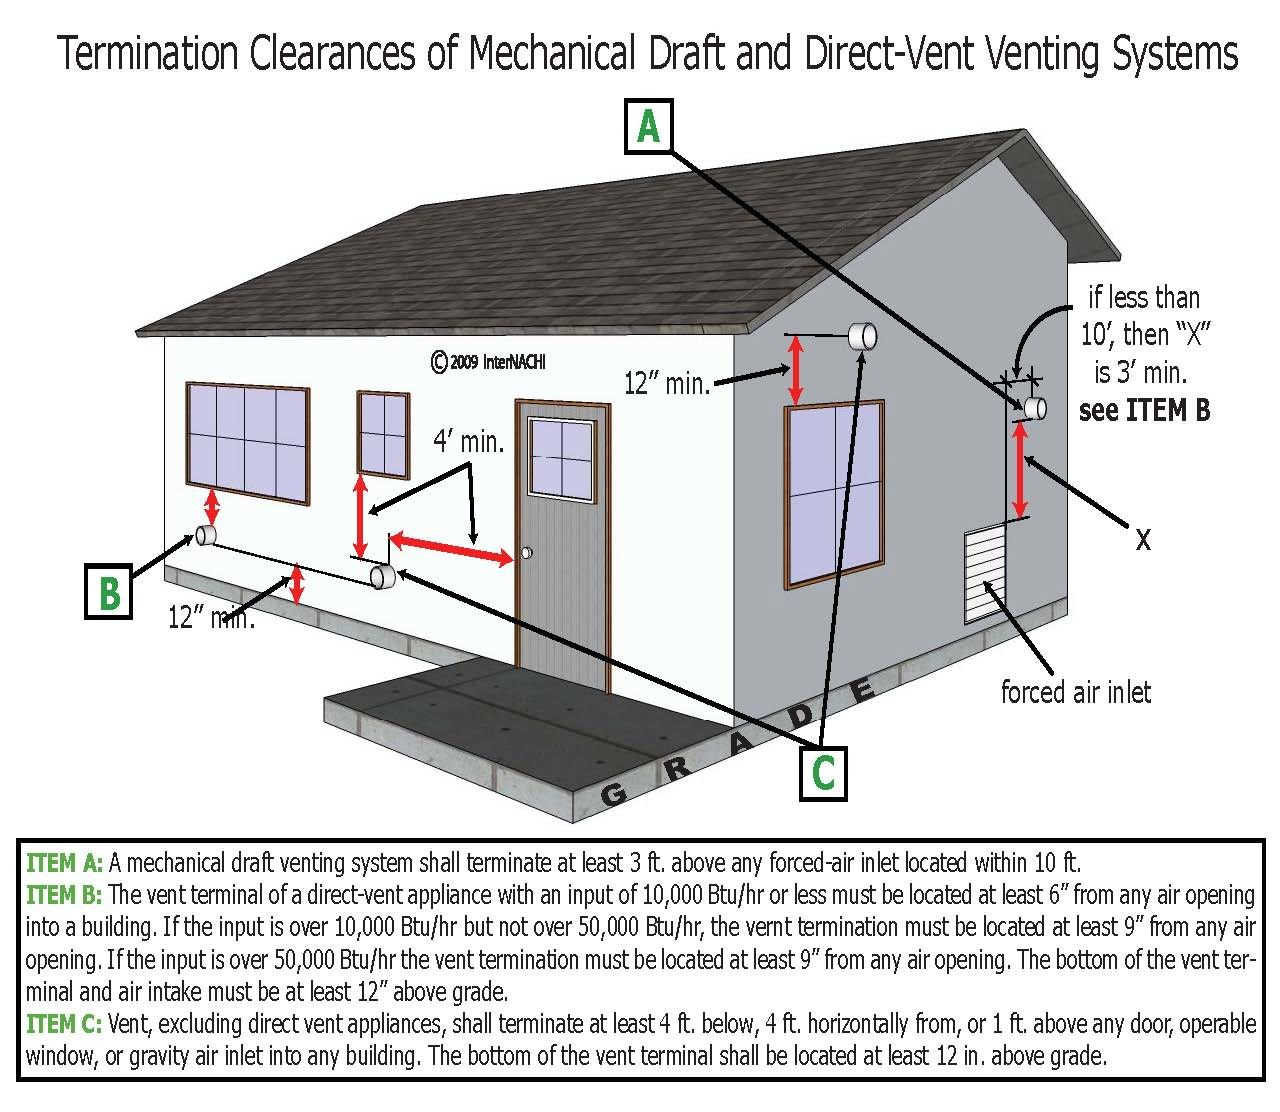 HVAC venting temination clearances.